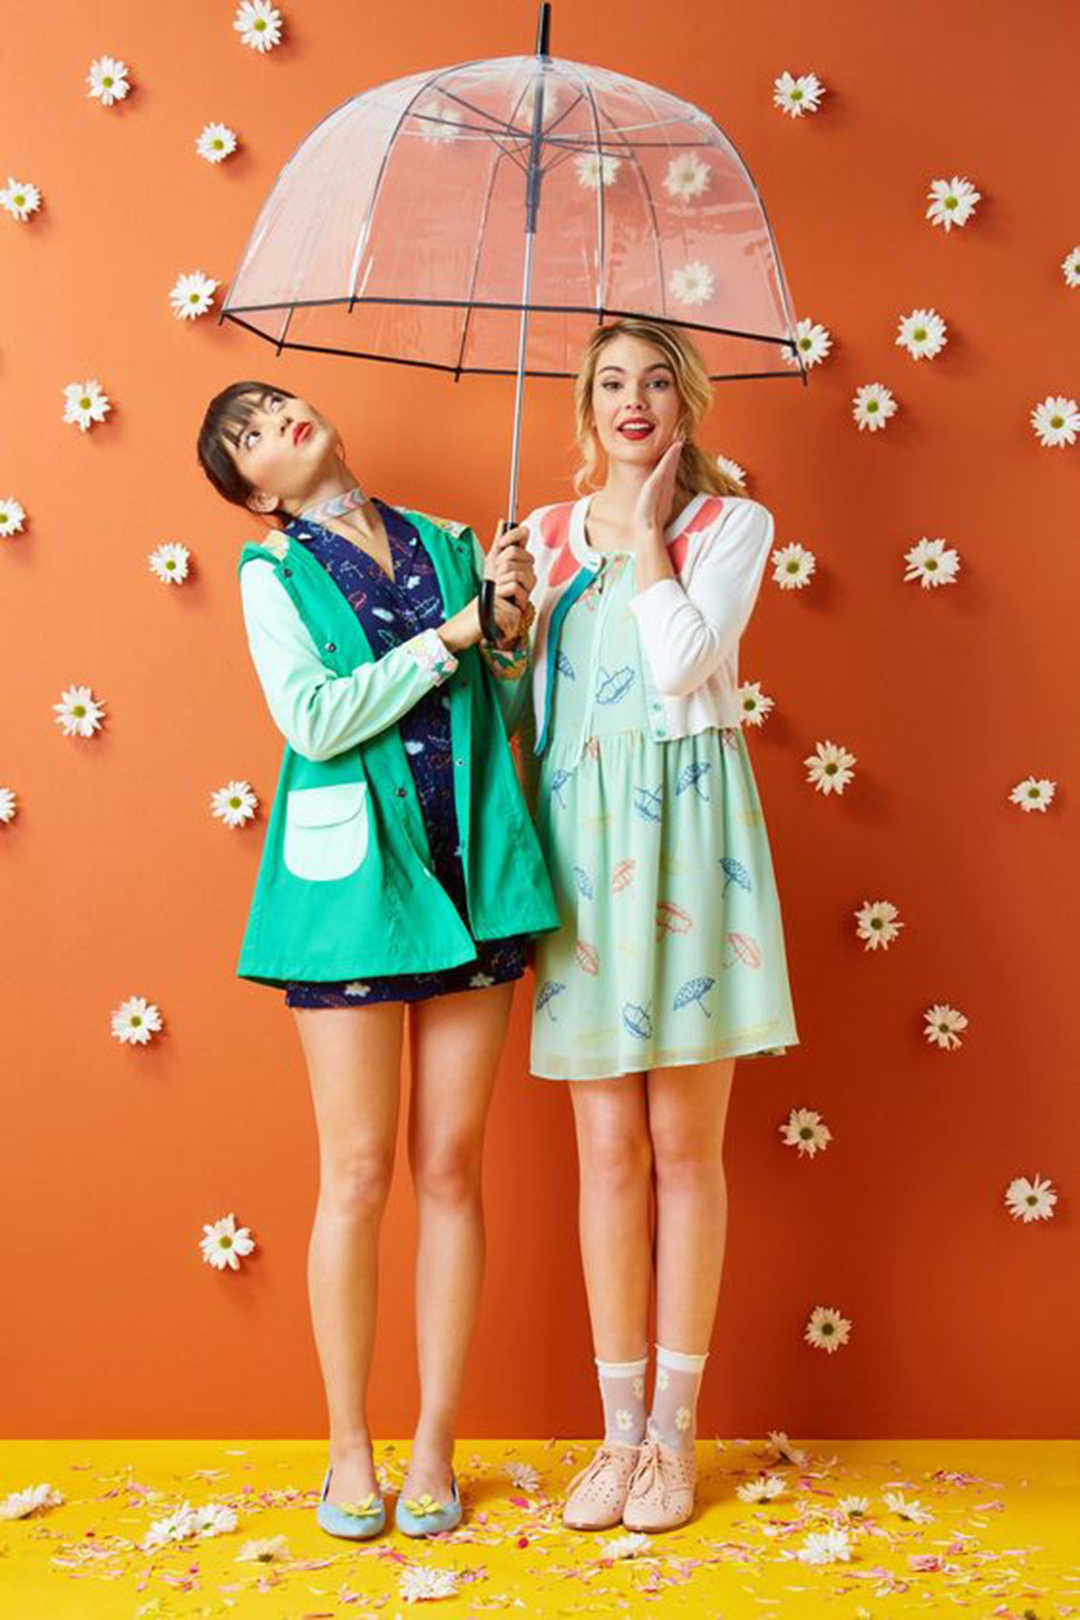 Clothes make perfect props for spring photography. Styled by Modcloth.